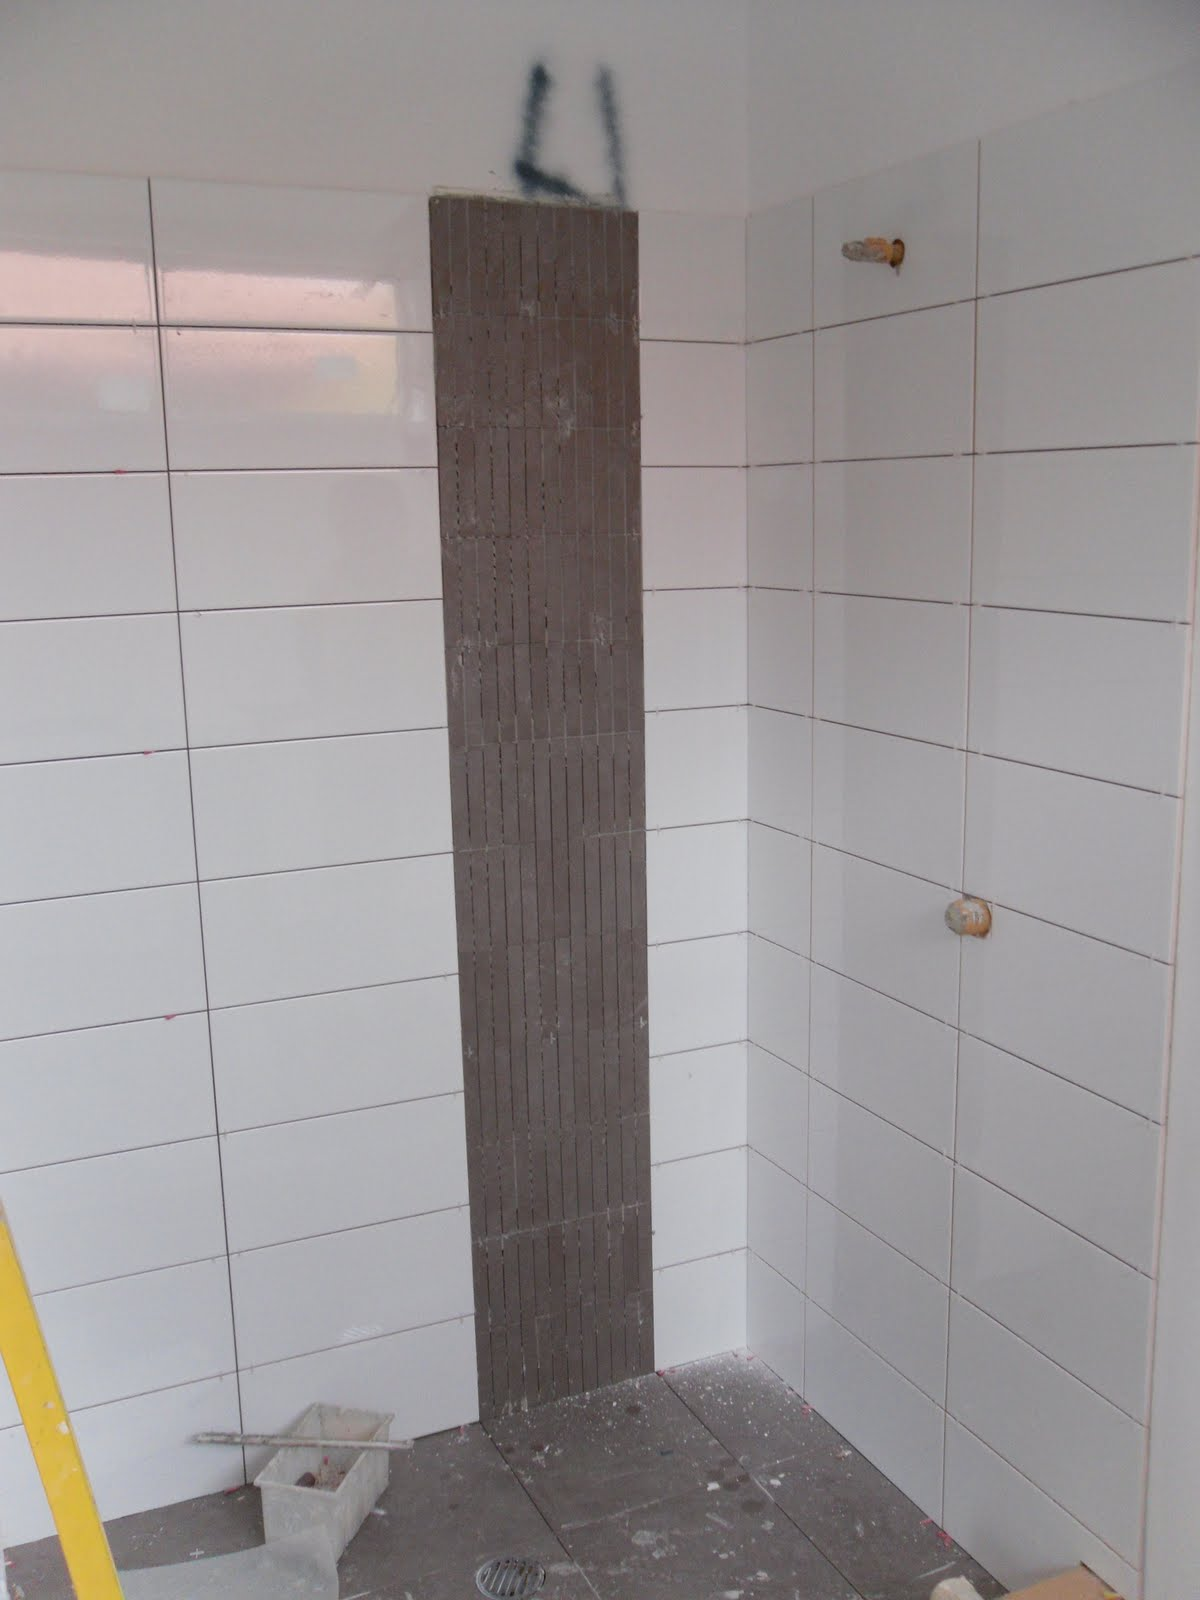 Bathroom Tiles Horizontal contemporary bathroom tiles vertical or horizontal design tile